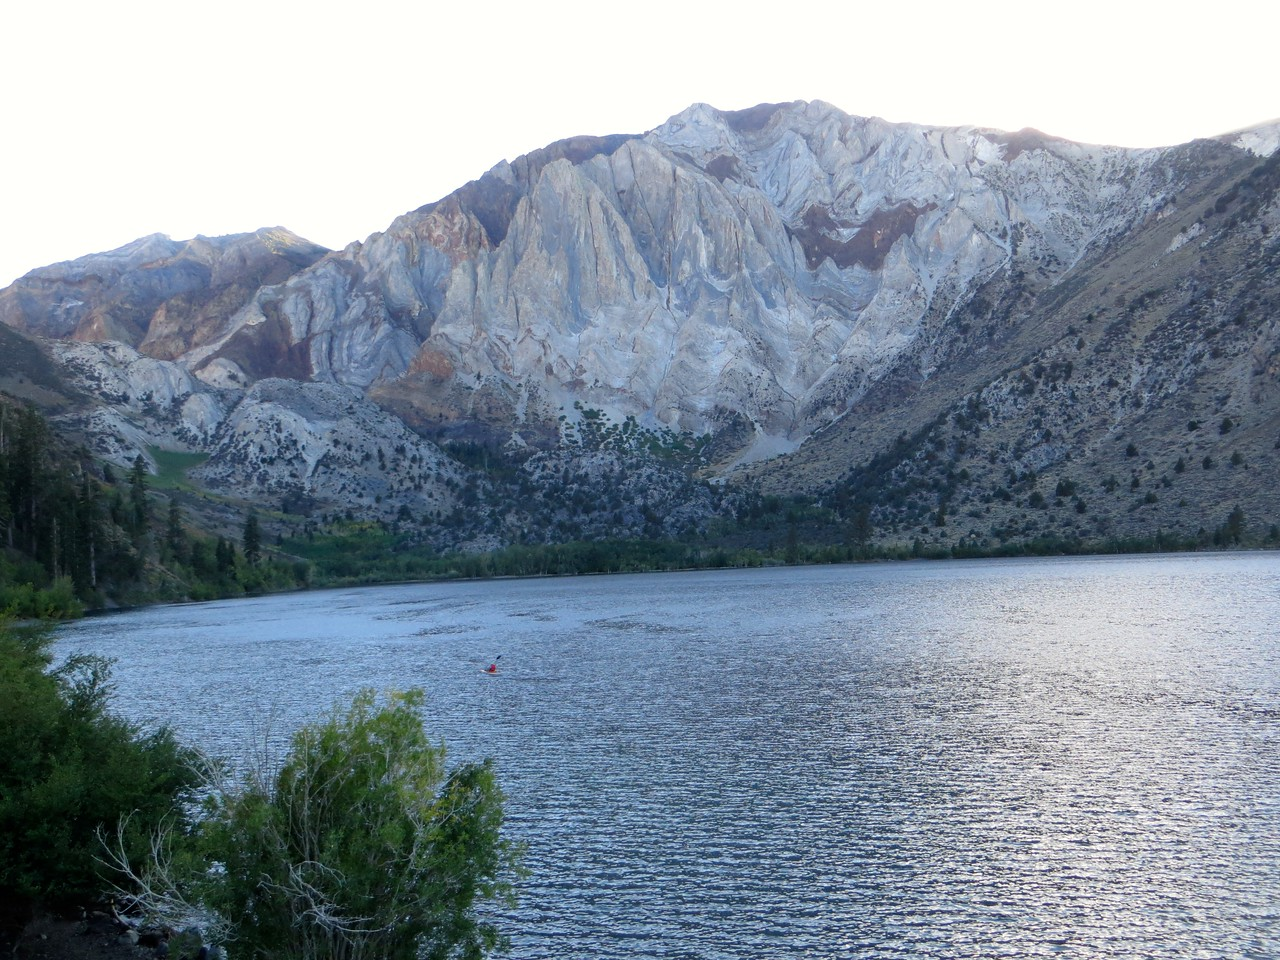 Convict Lake, with Laurel Mountain in the background